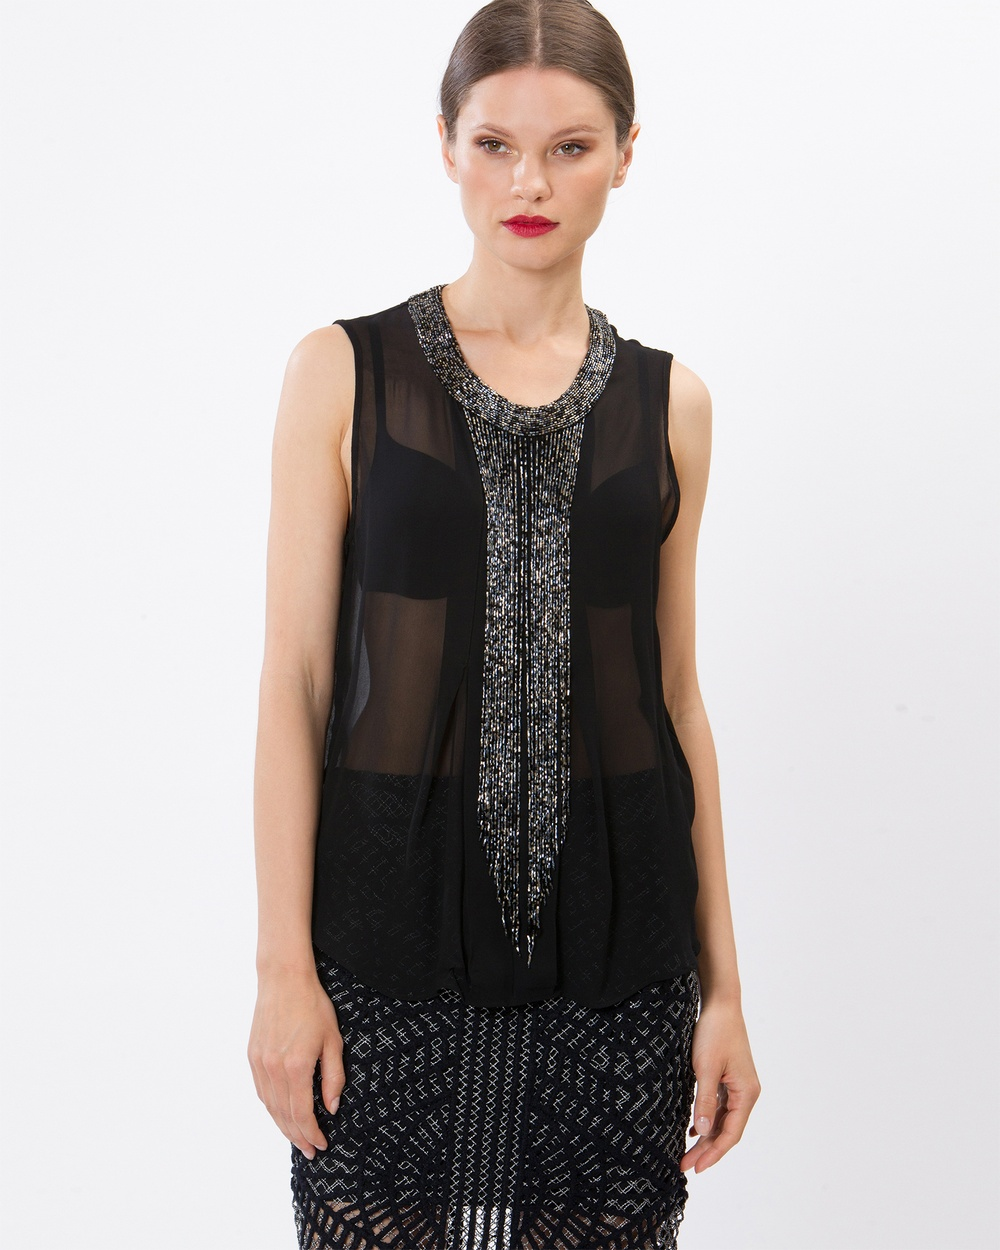 SIYONA Emanuelle Beaded Fringe Top Tops Black Emanuelle Beaded Fringe Top